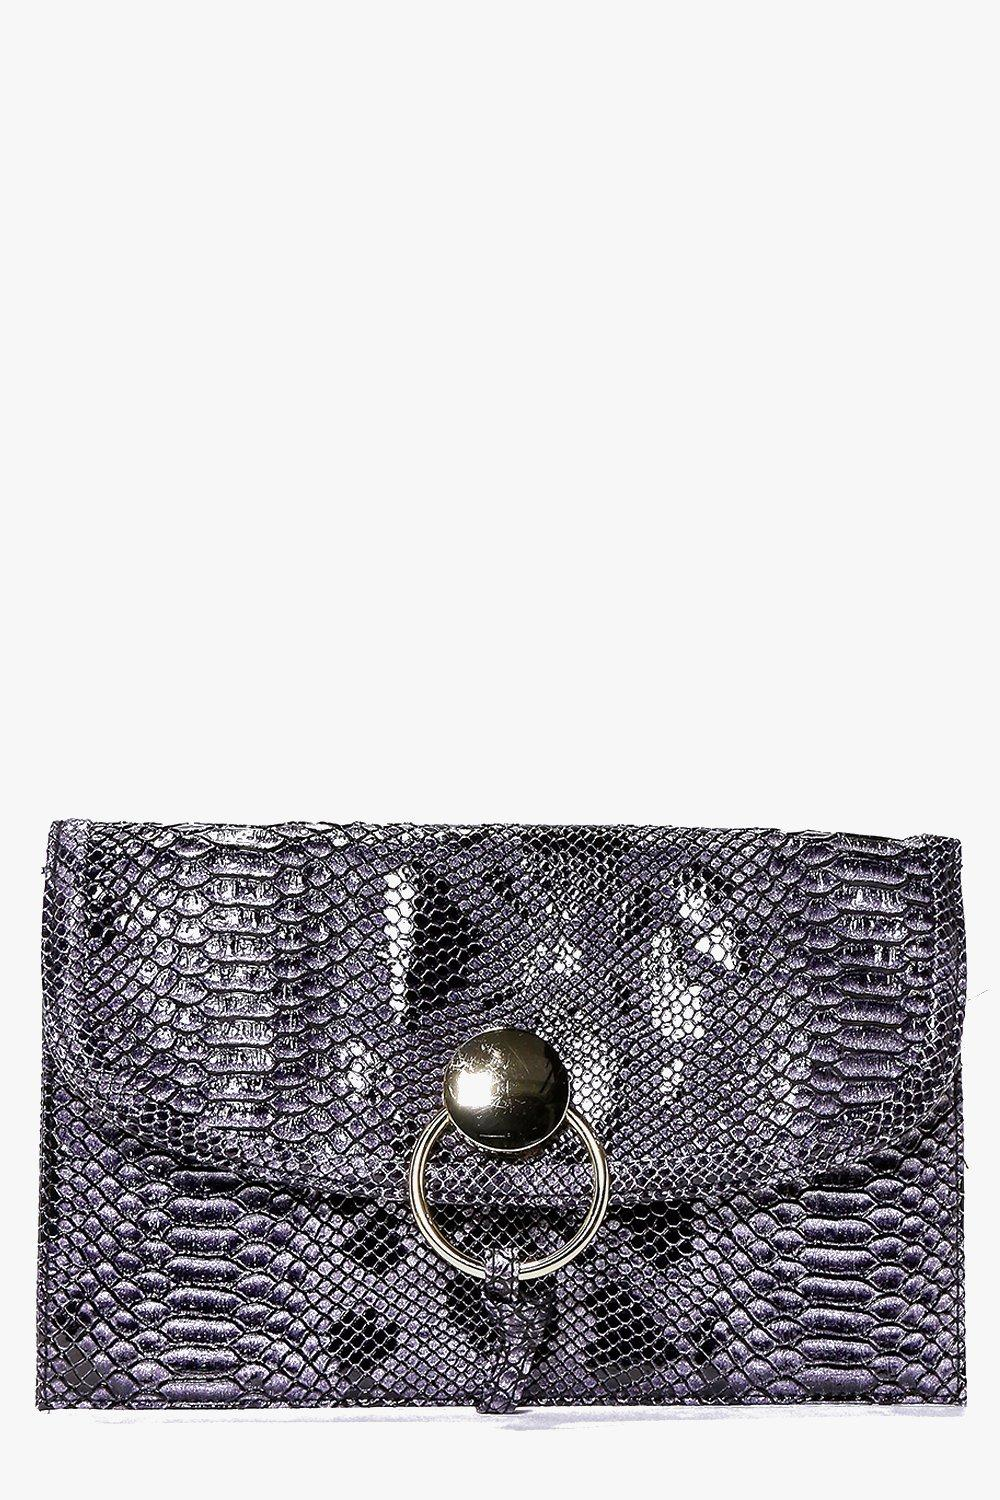 Eva Mock Croc Metal Loop Detail Clutch Bag